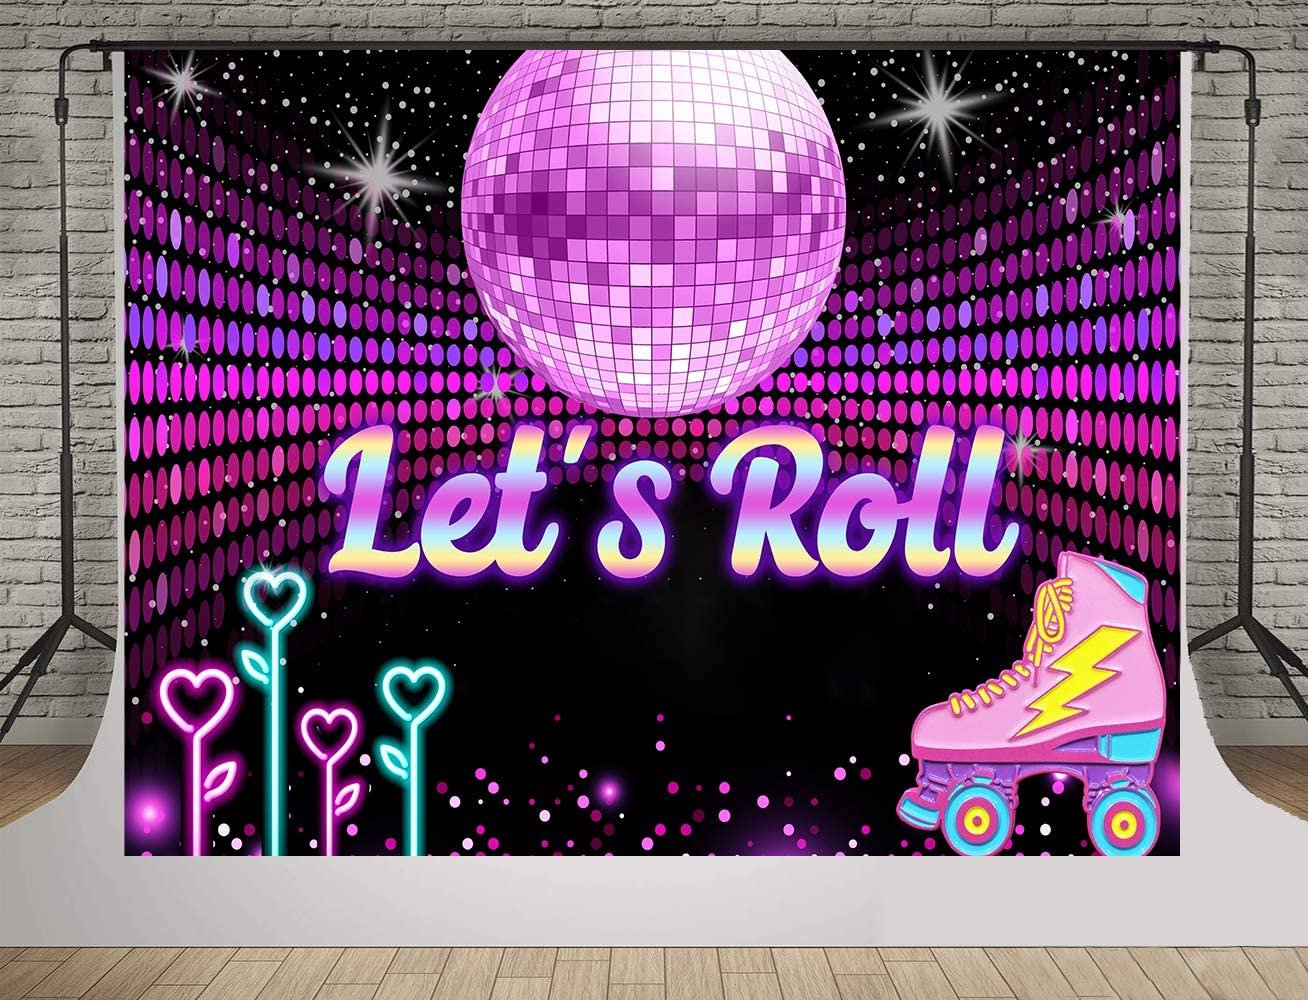 SDDSER Disco Dancing Backdrops for Dance Entertainment Background Photography 7X5FT Colorful Heart Shaped Dance Lamp Photo Backgrounds Stand Party Wall Paper Room Mural Props Soft Cotton MSDLS292